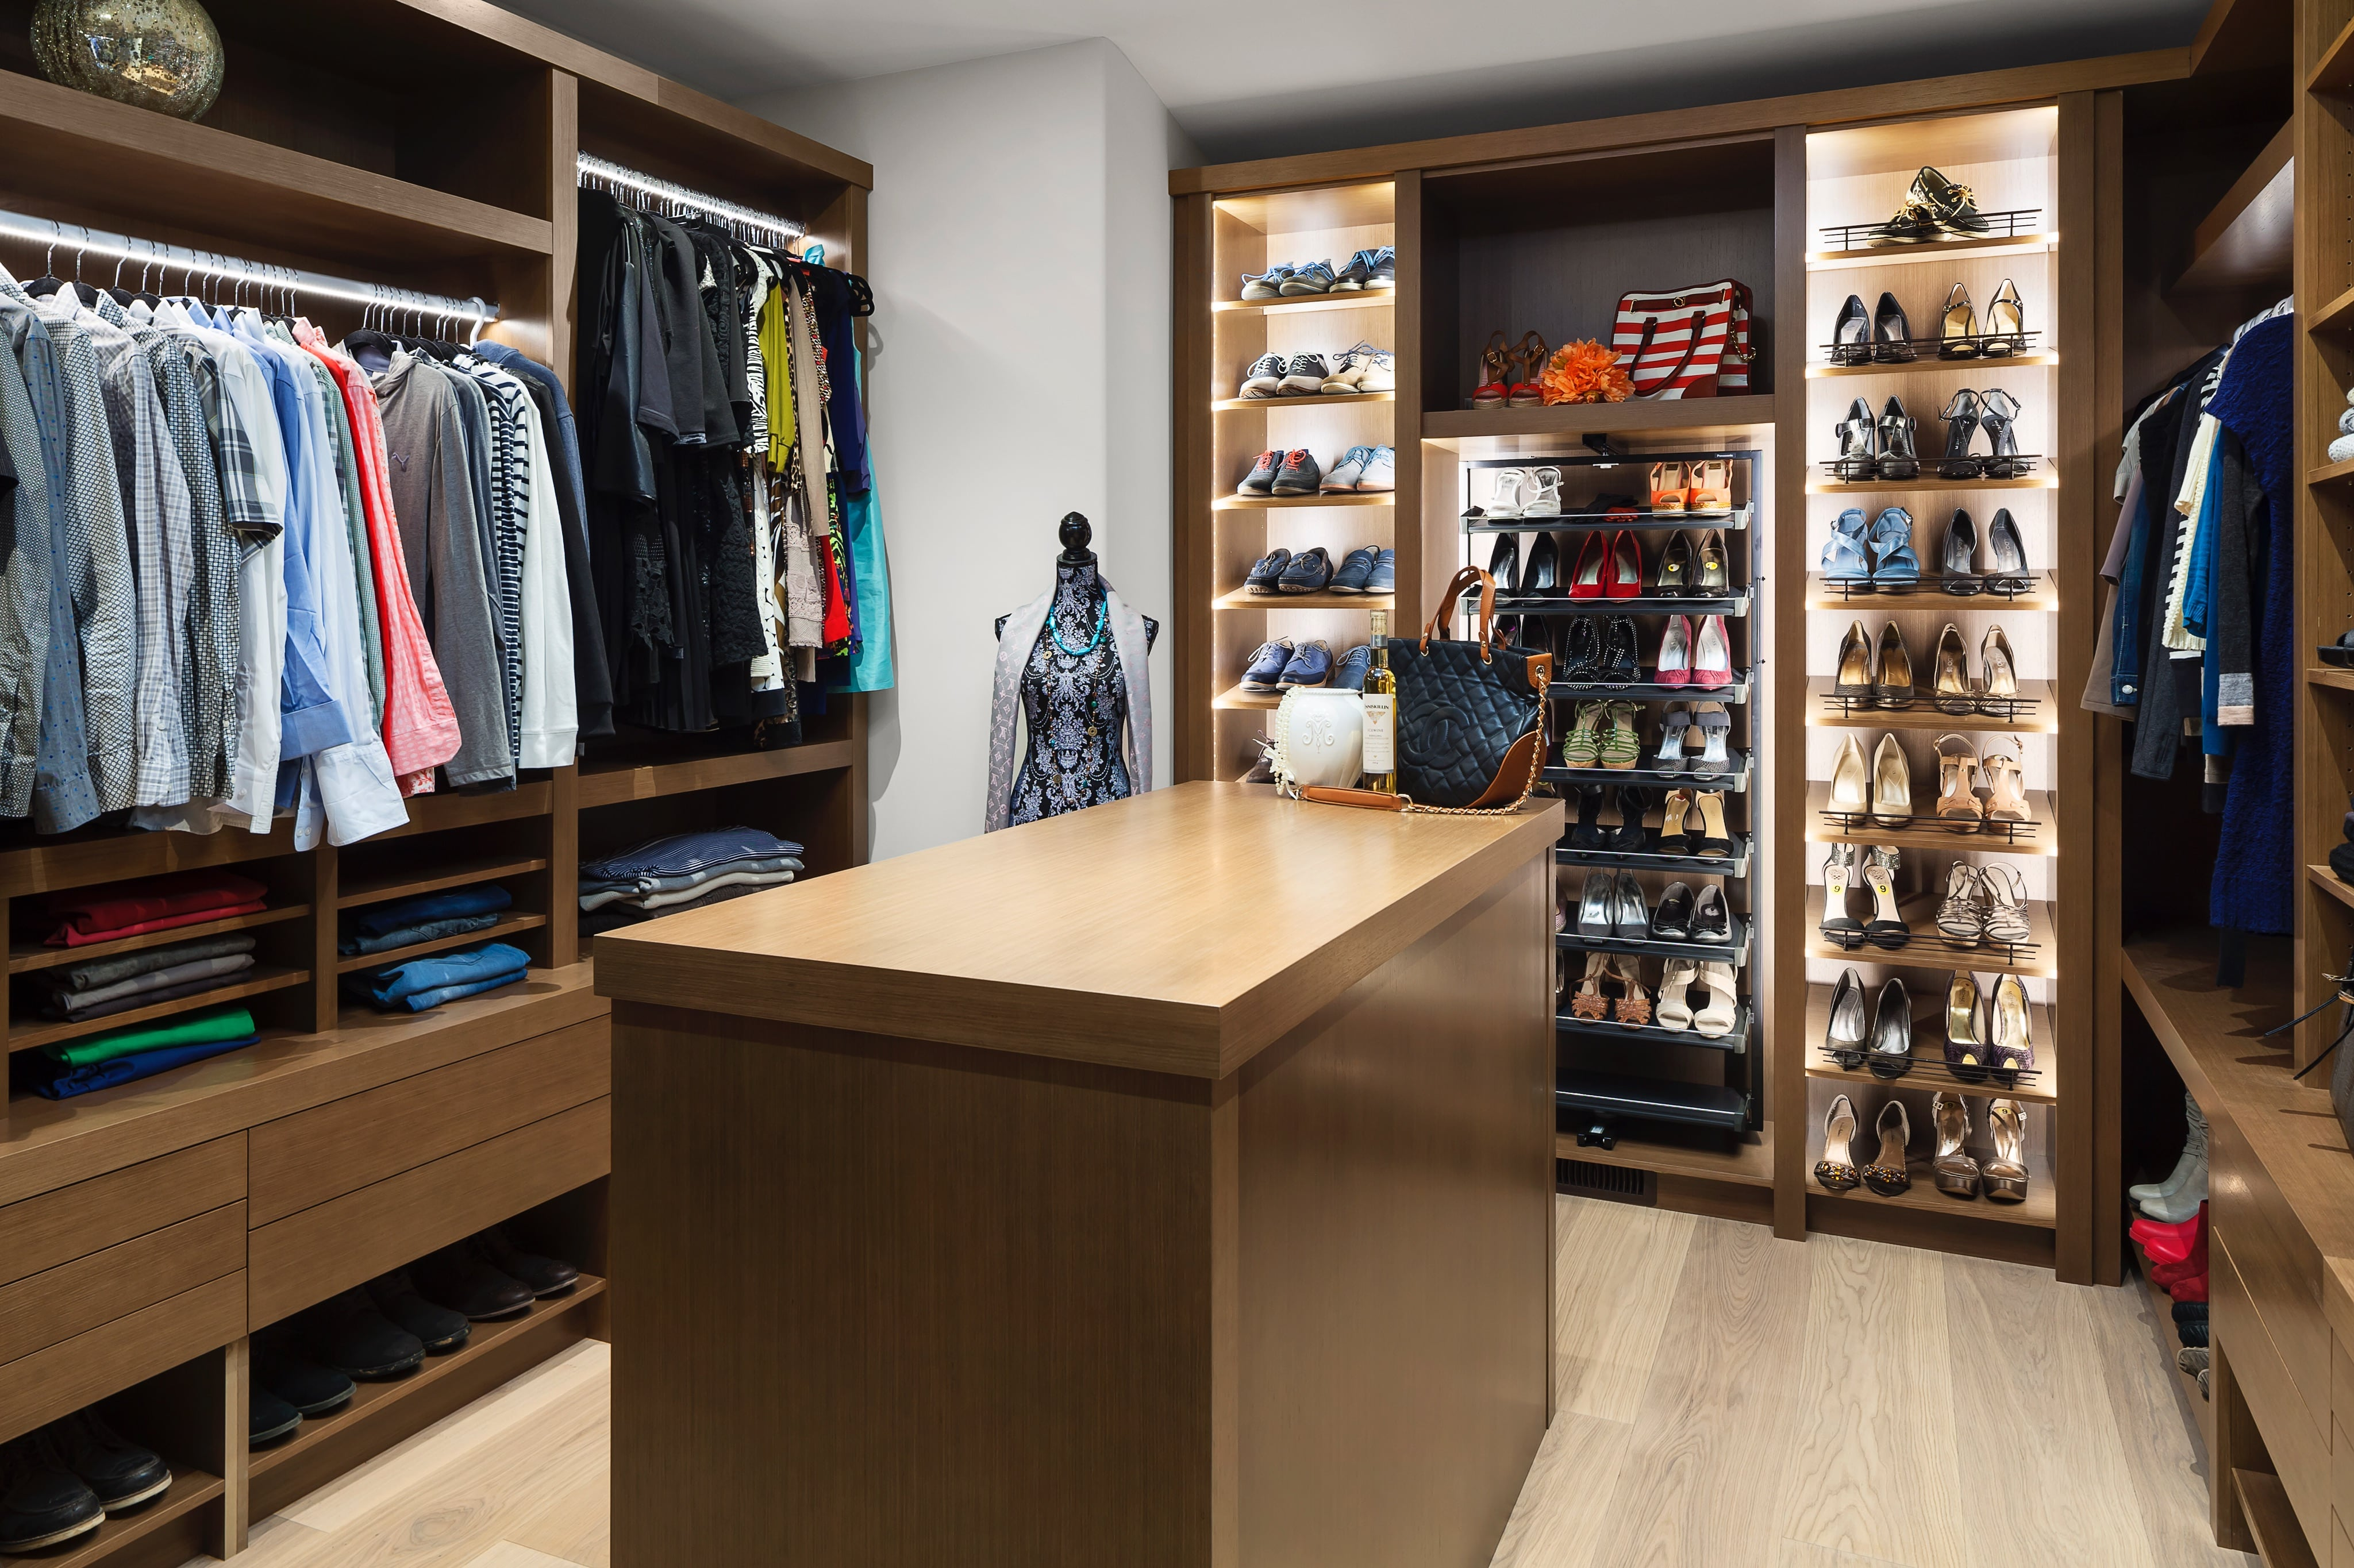 Walk-in closet filled with clothes and lit with custom light